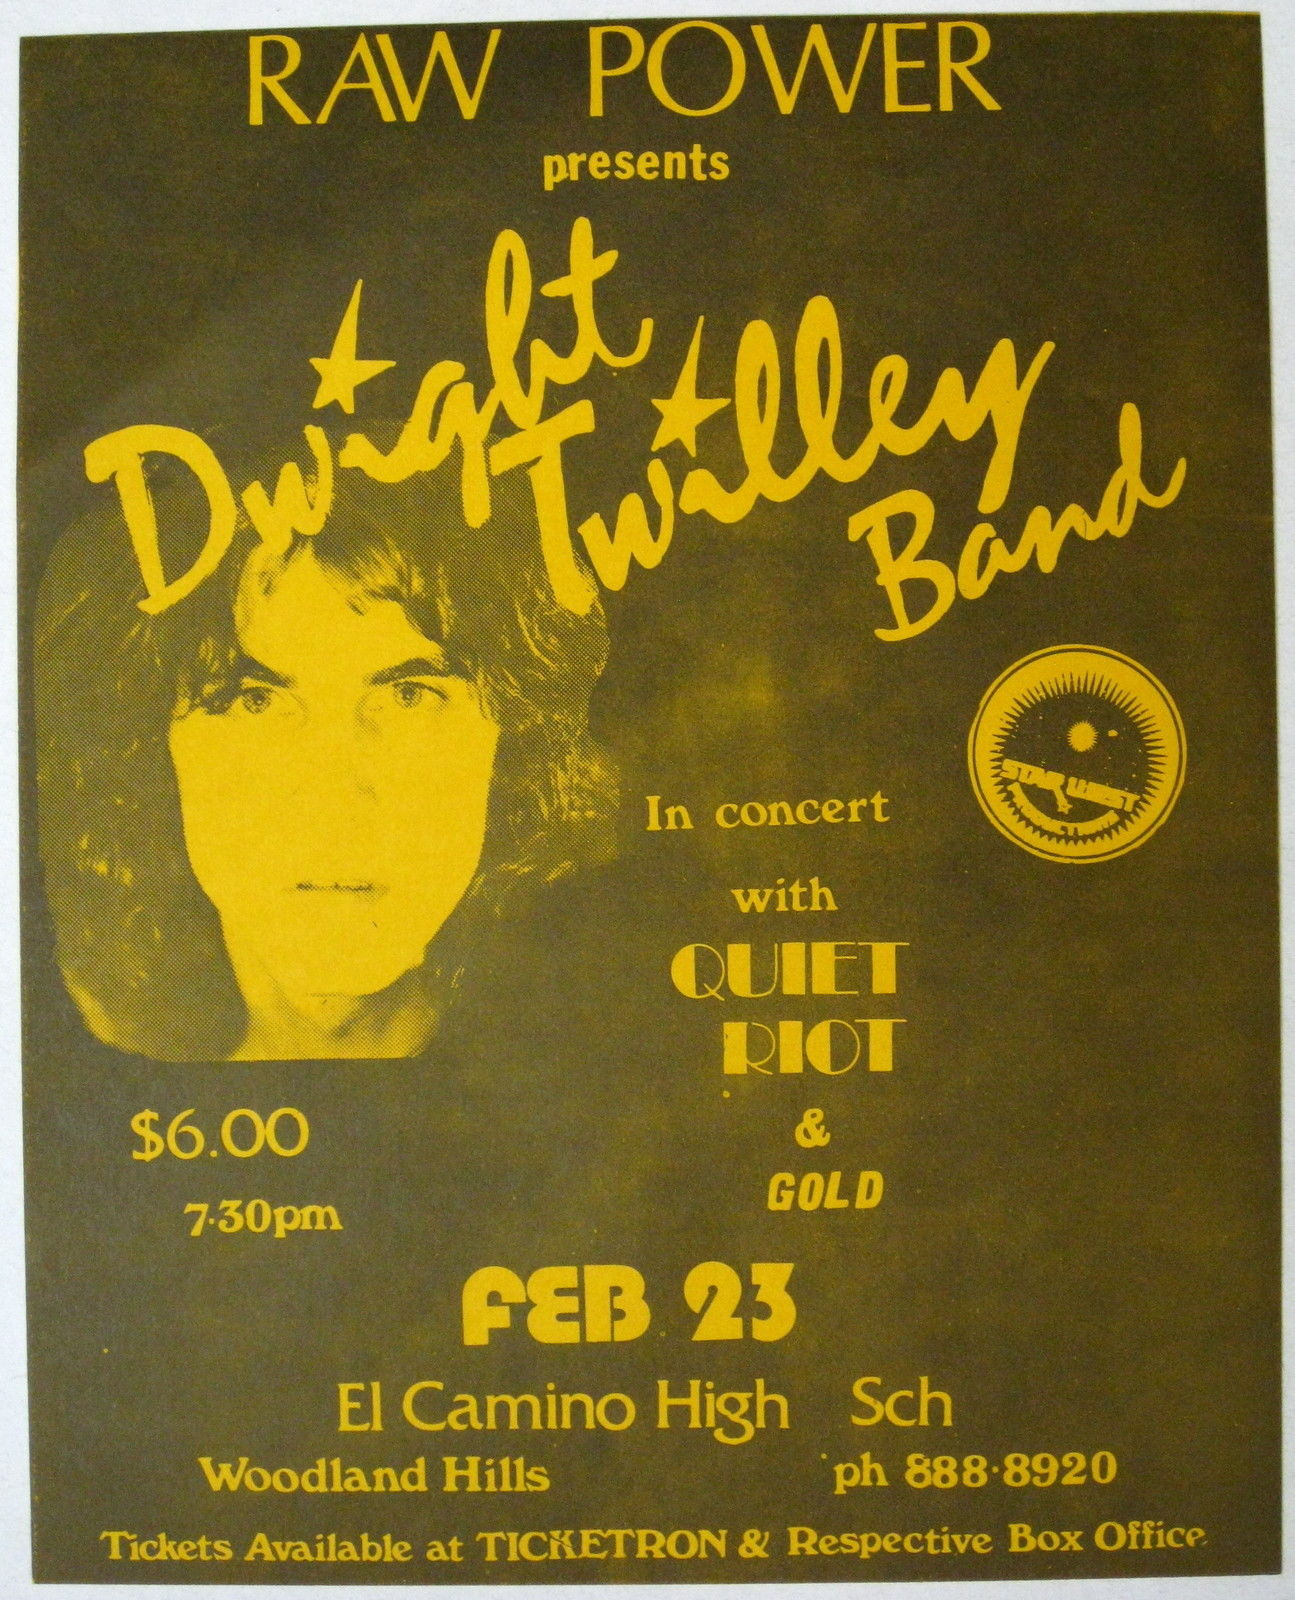 Quiet Riot 23 Feb 79 Dwight Twilley flyer.JPG